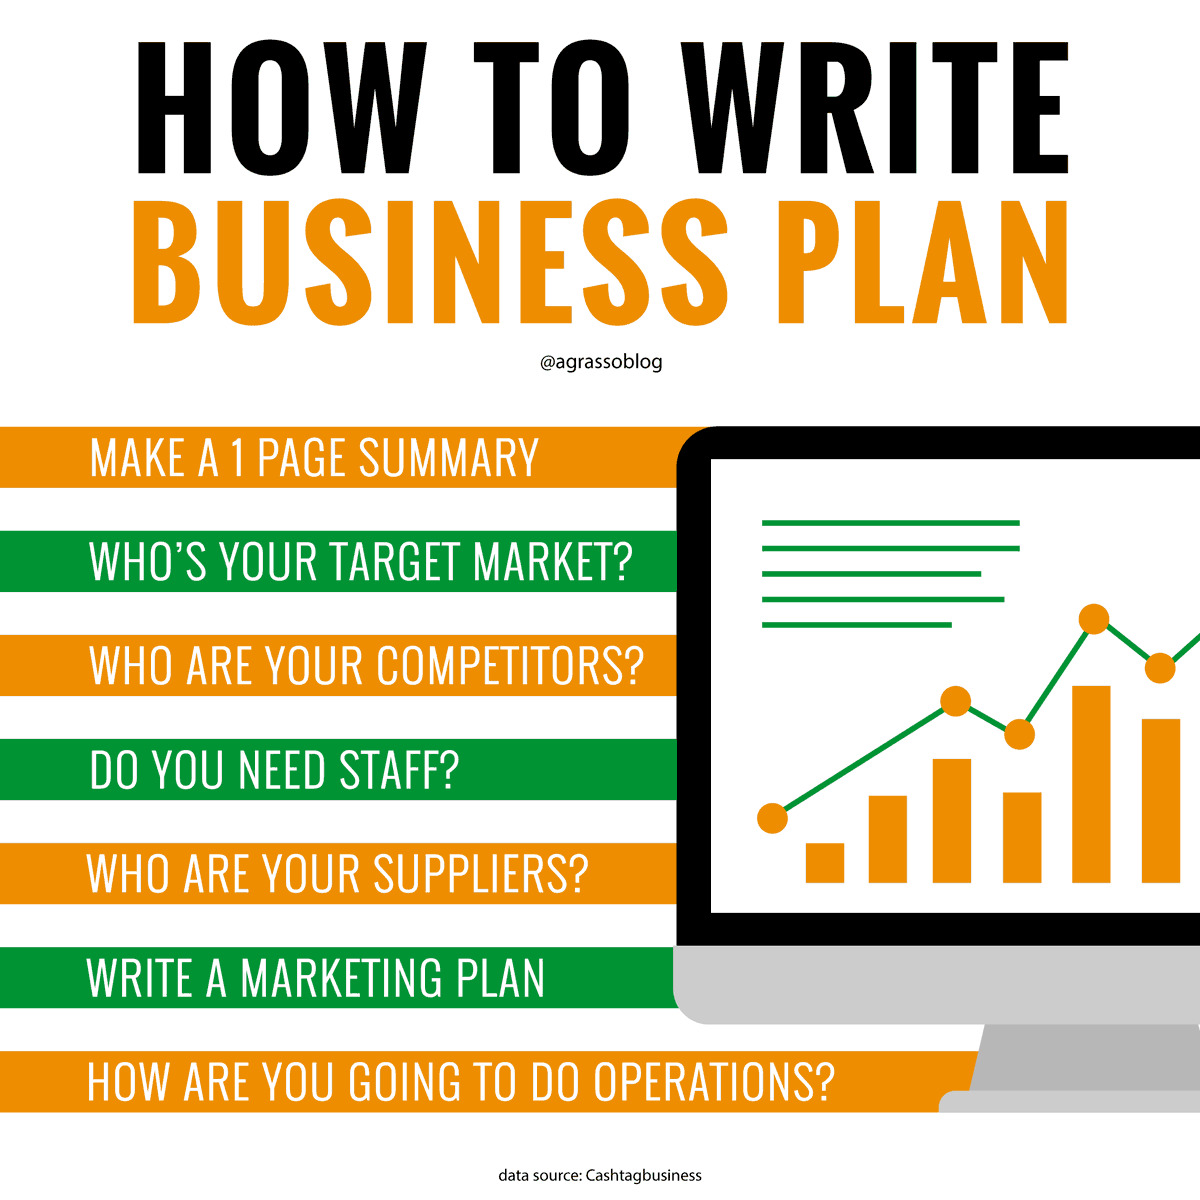 The Business Plan is a document setting out a business's future objectives and strategies for achieving them - Let's see how to write it